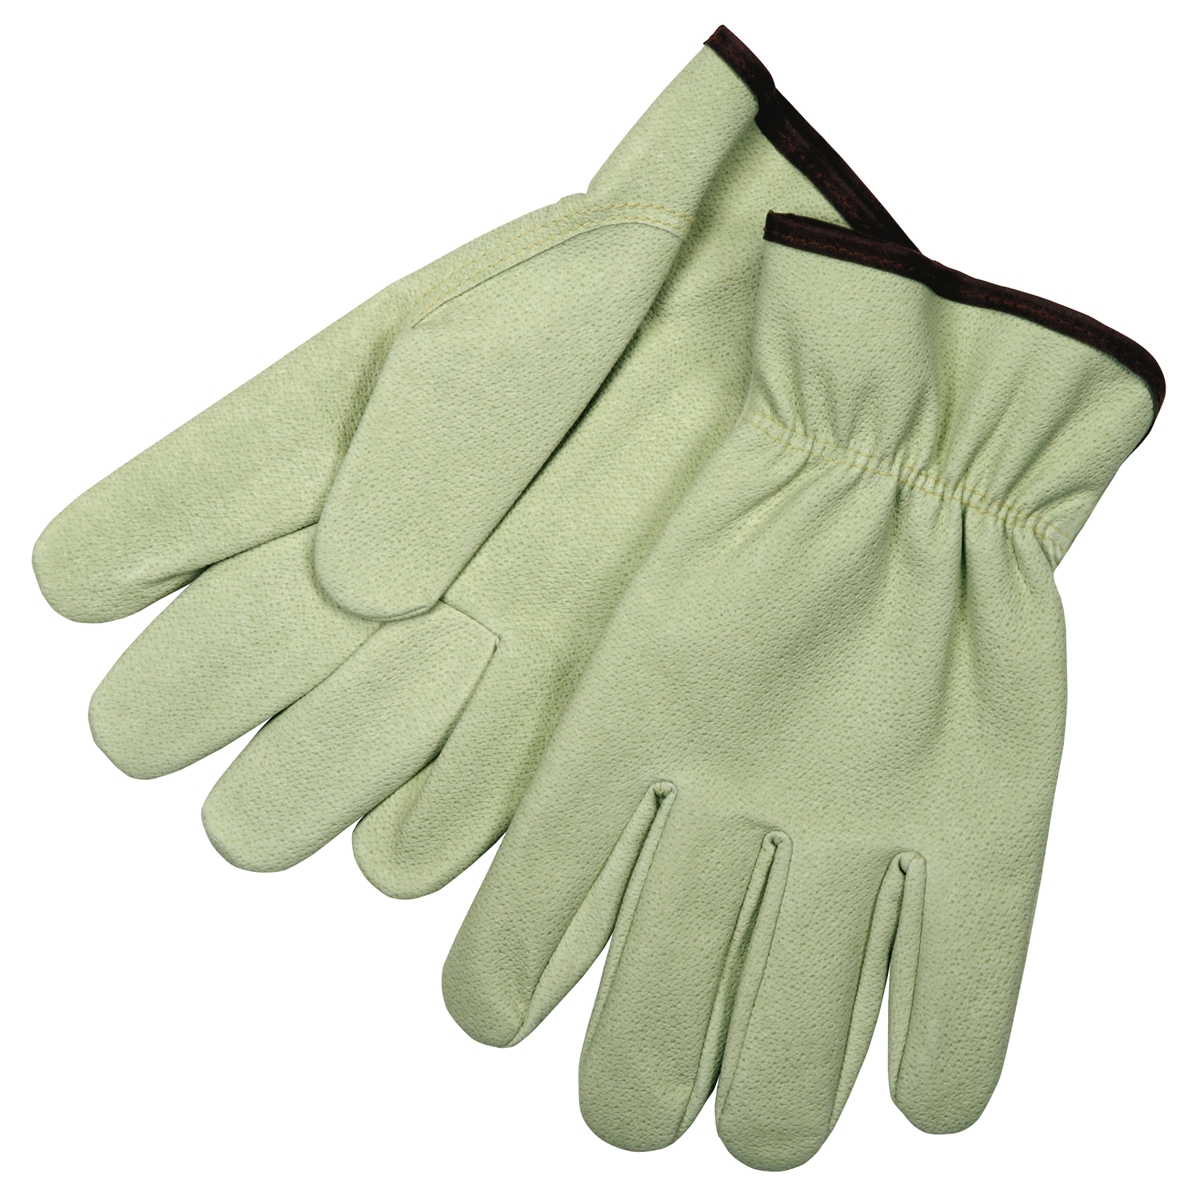 Synthetic leather driving gloves - Memphis 3711 Grain Pig Texture Synthetic Leather Driver Gloves Keystone Thumb